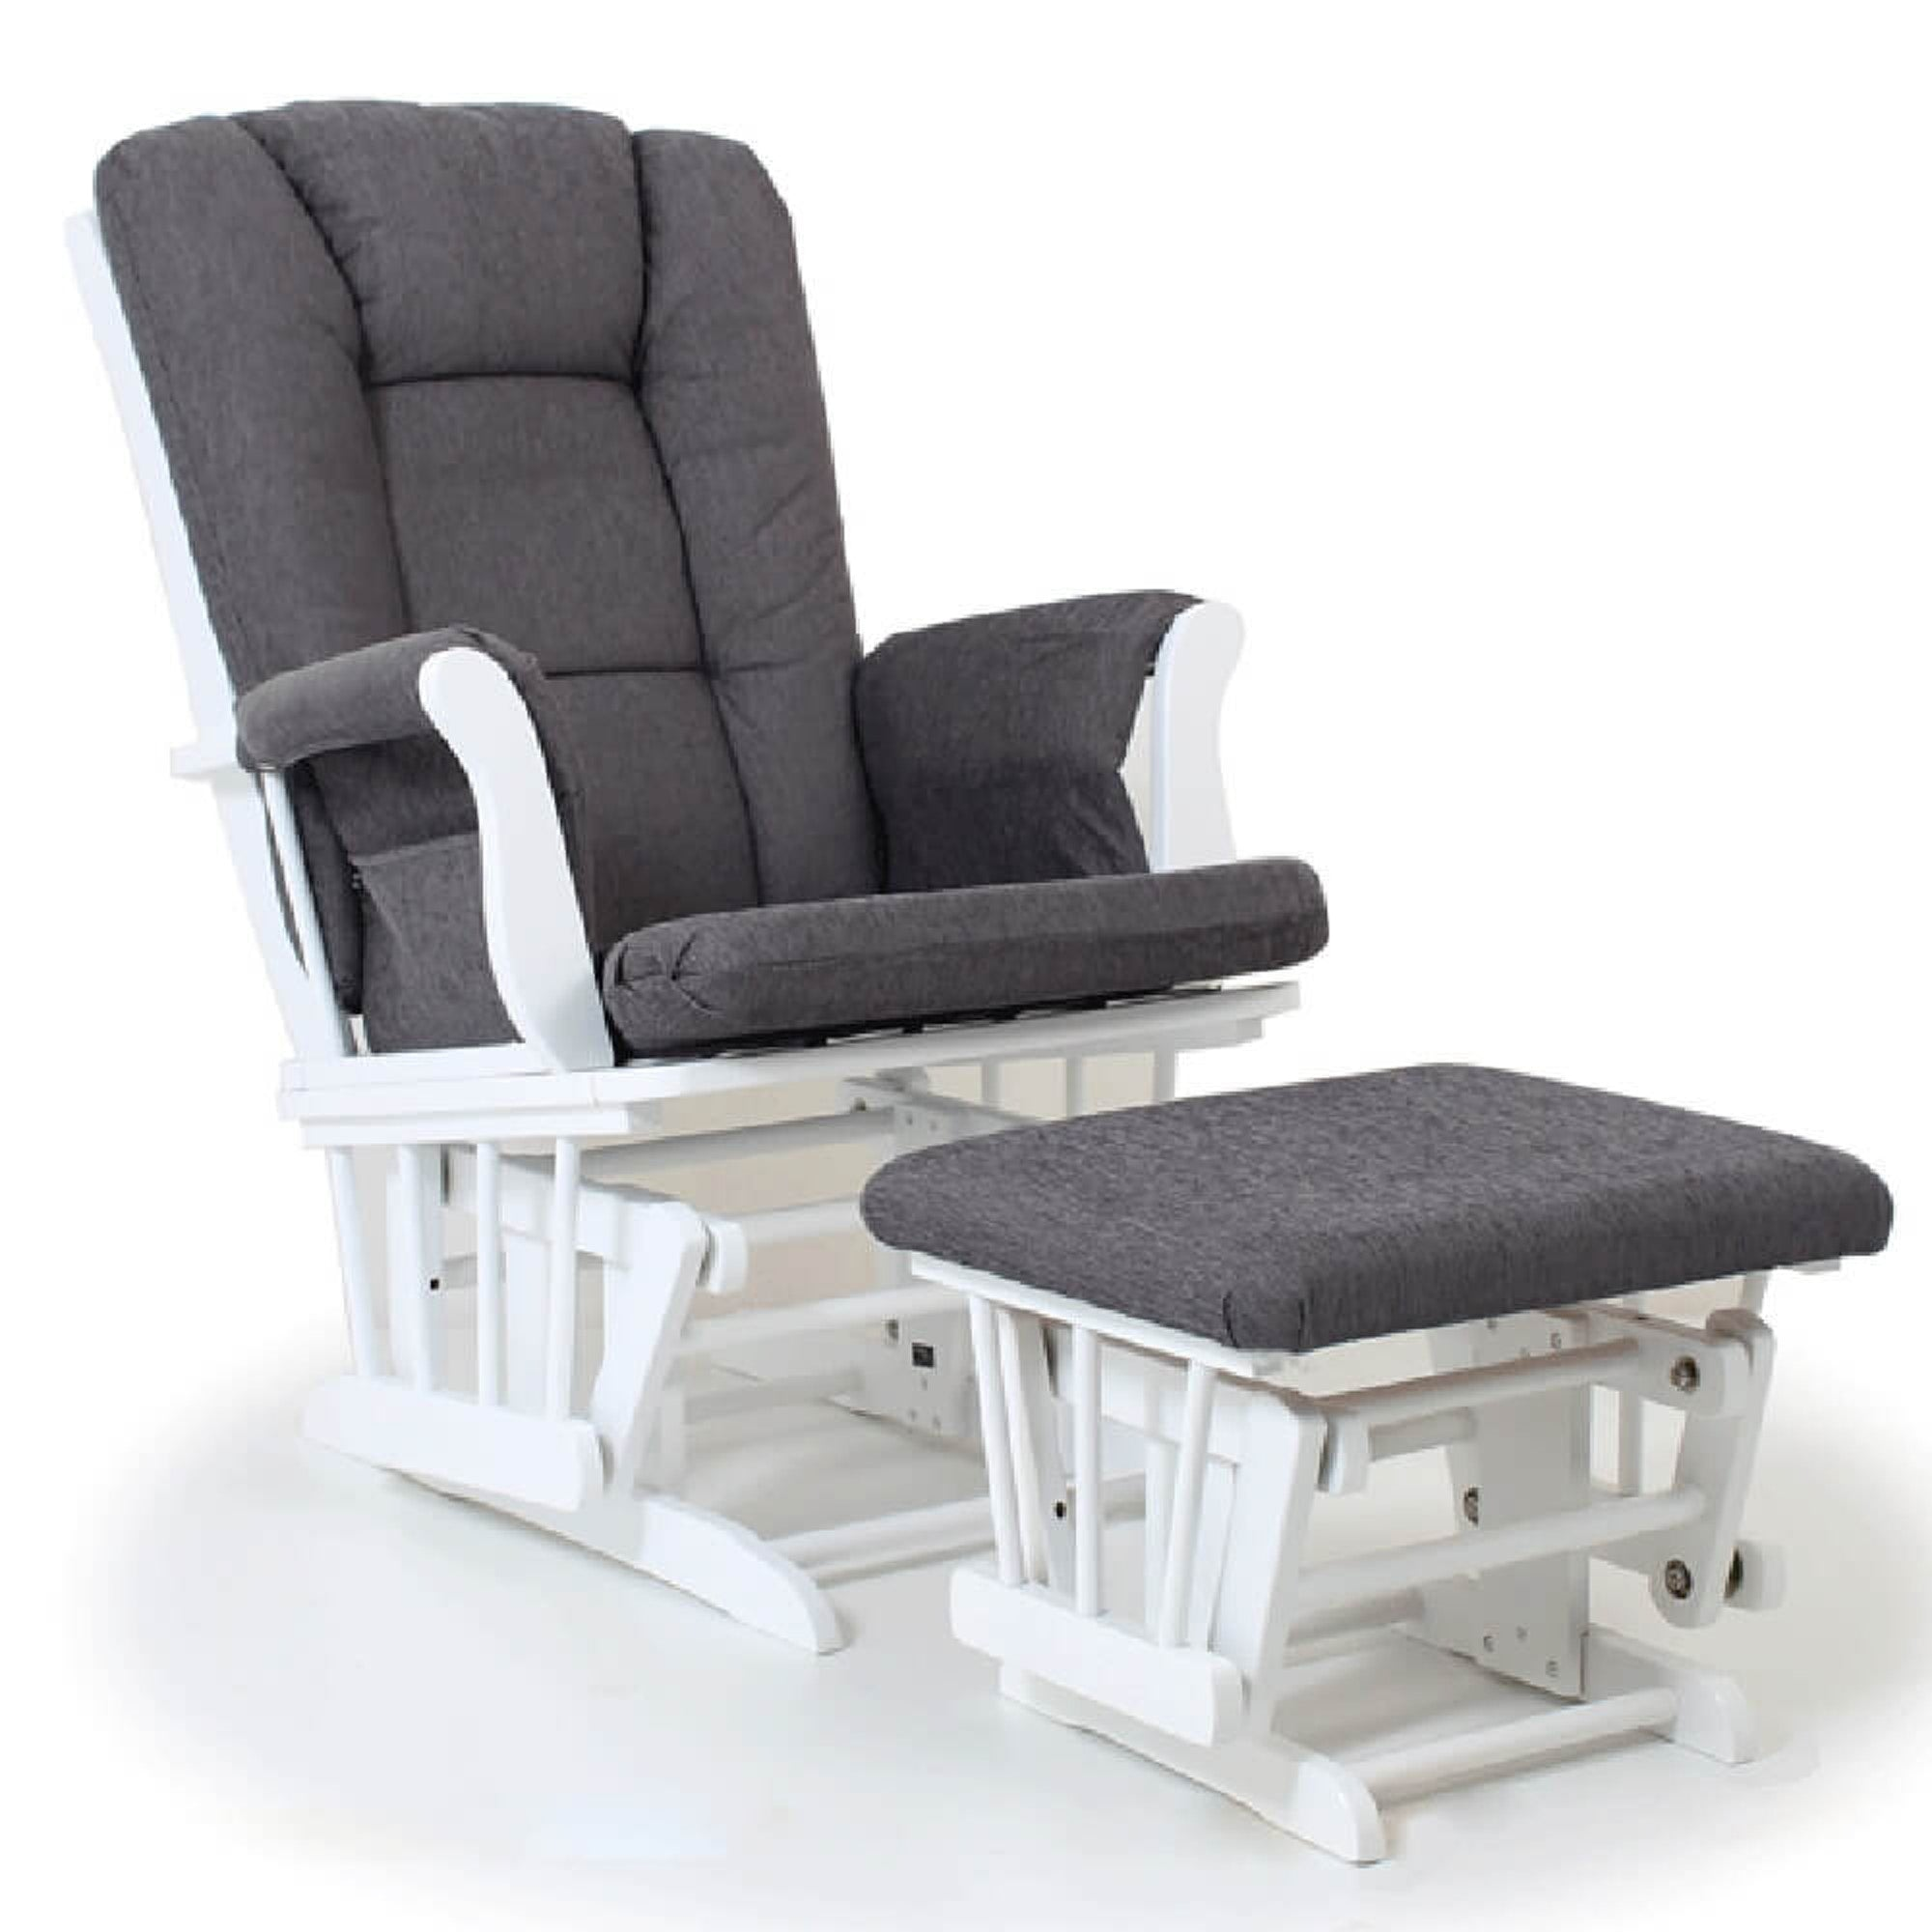 Valco Bliss Glider Chair & Ottoman